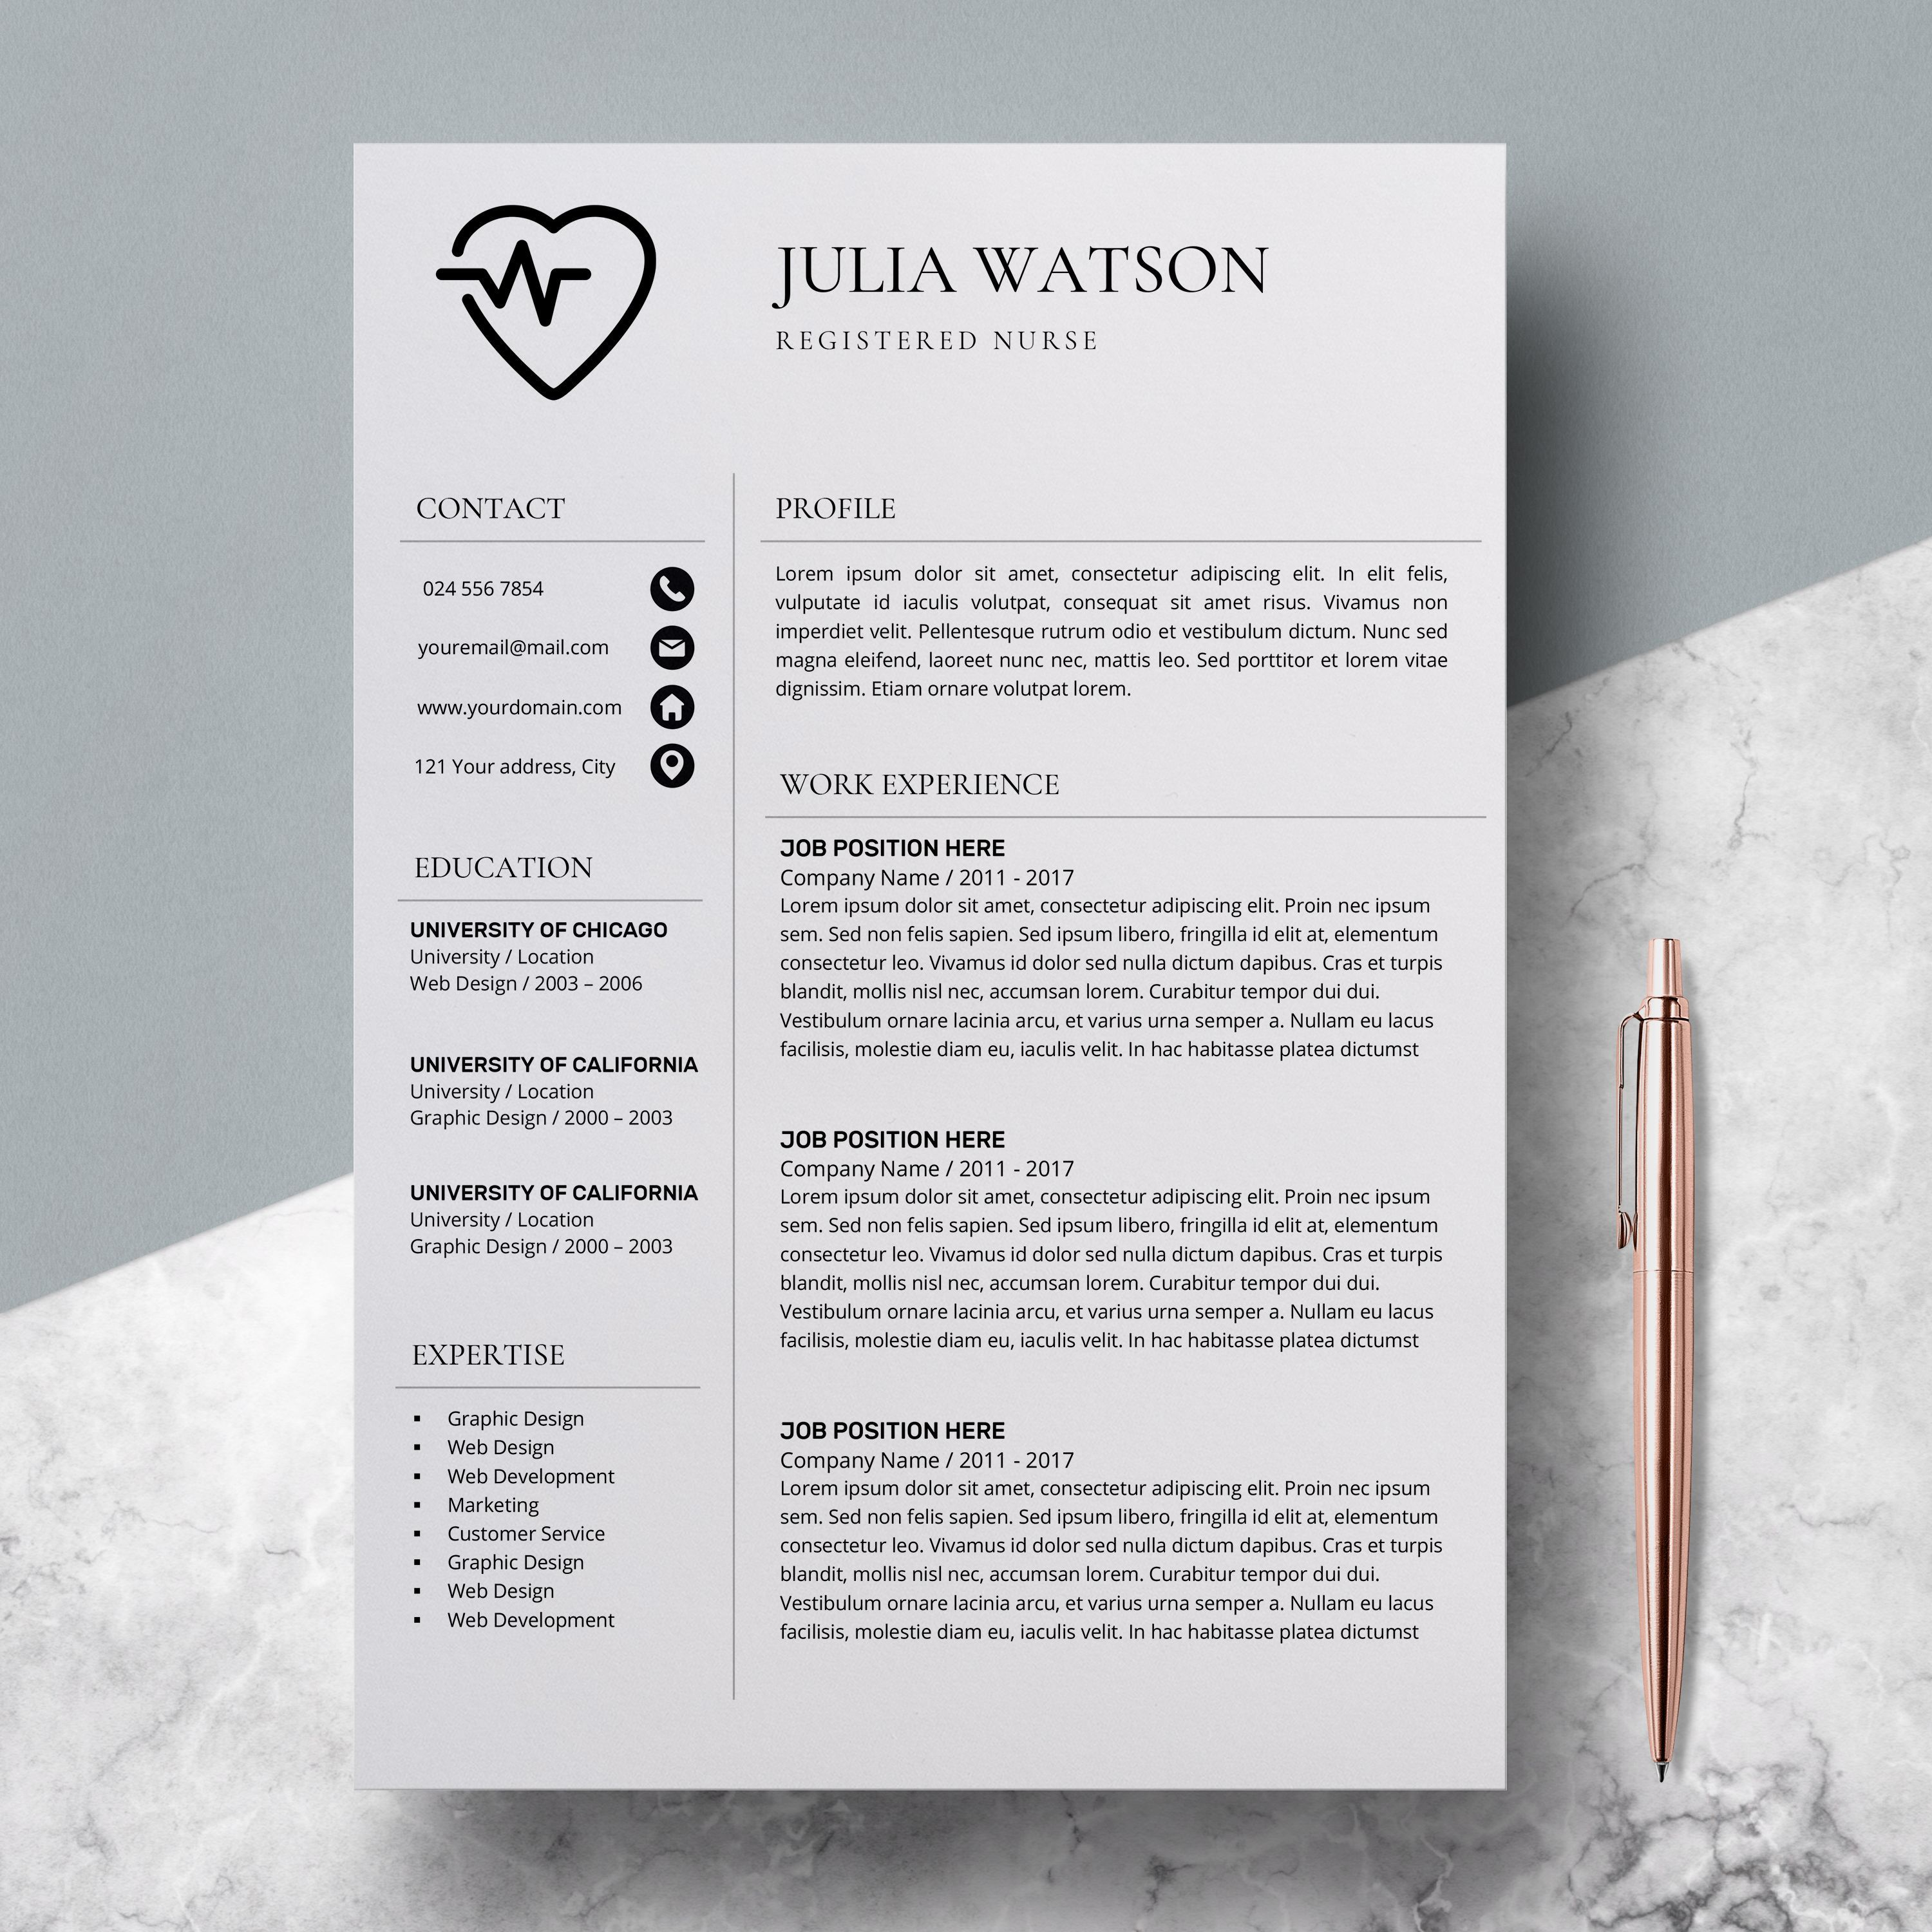 000 Unforgettable Resume Template For Nurse Design  Sample Nursing Assistant With No Experience Rn' FreeFull